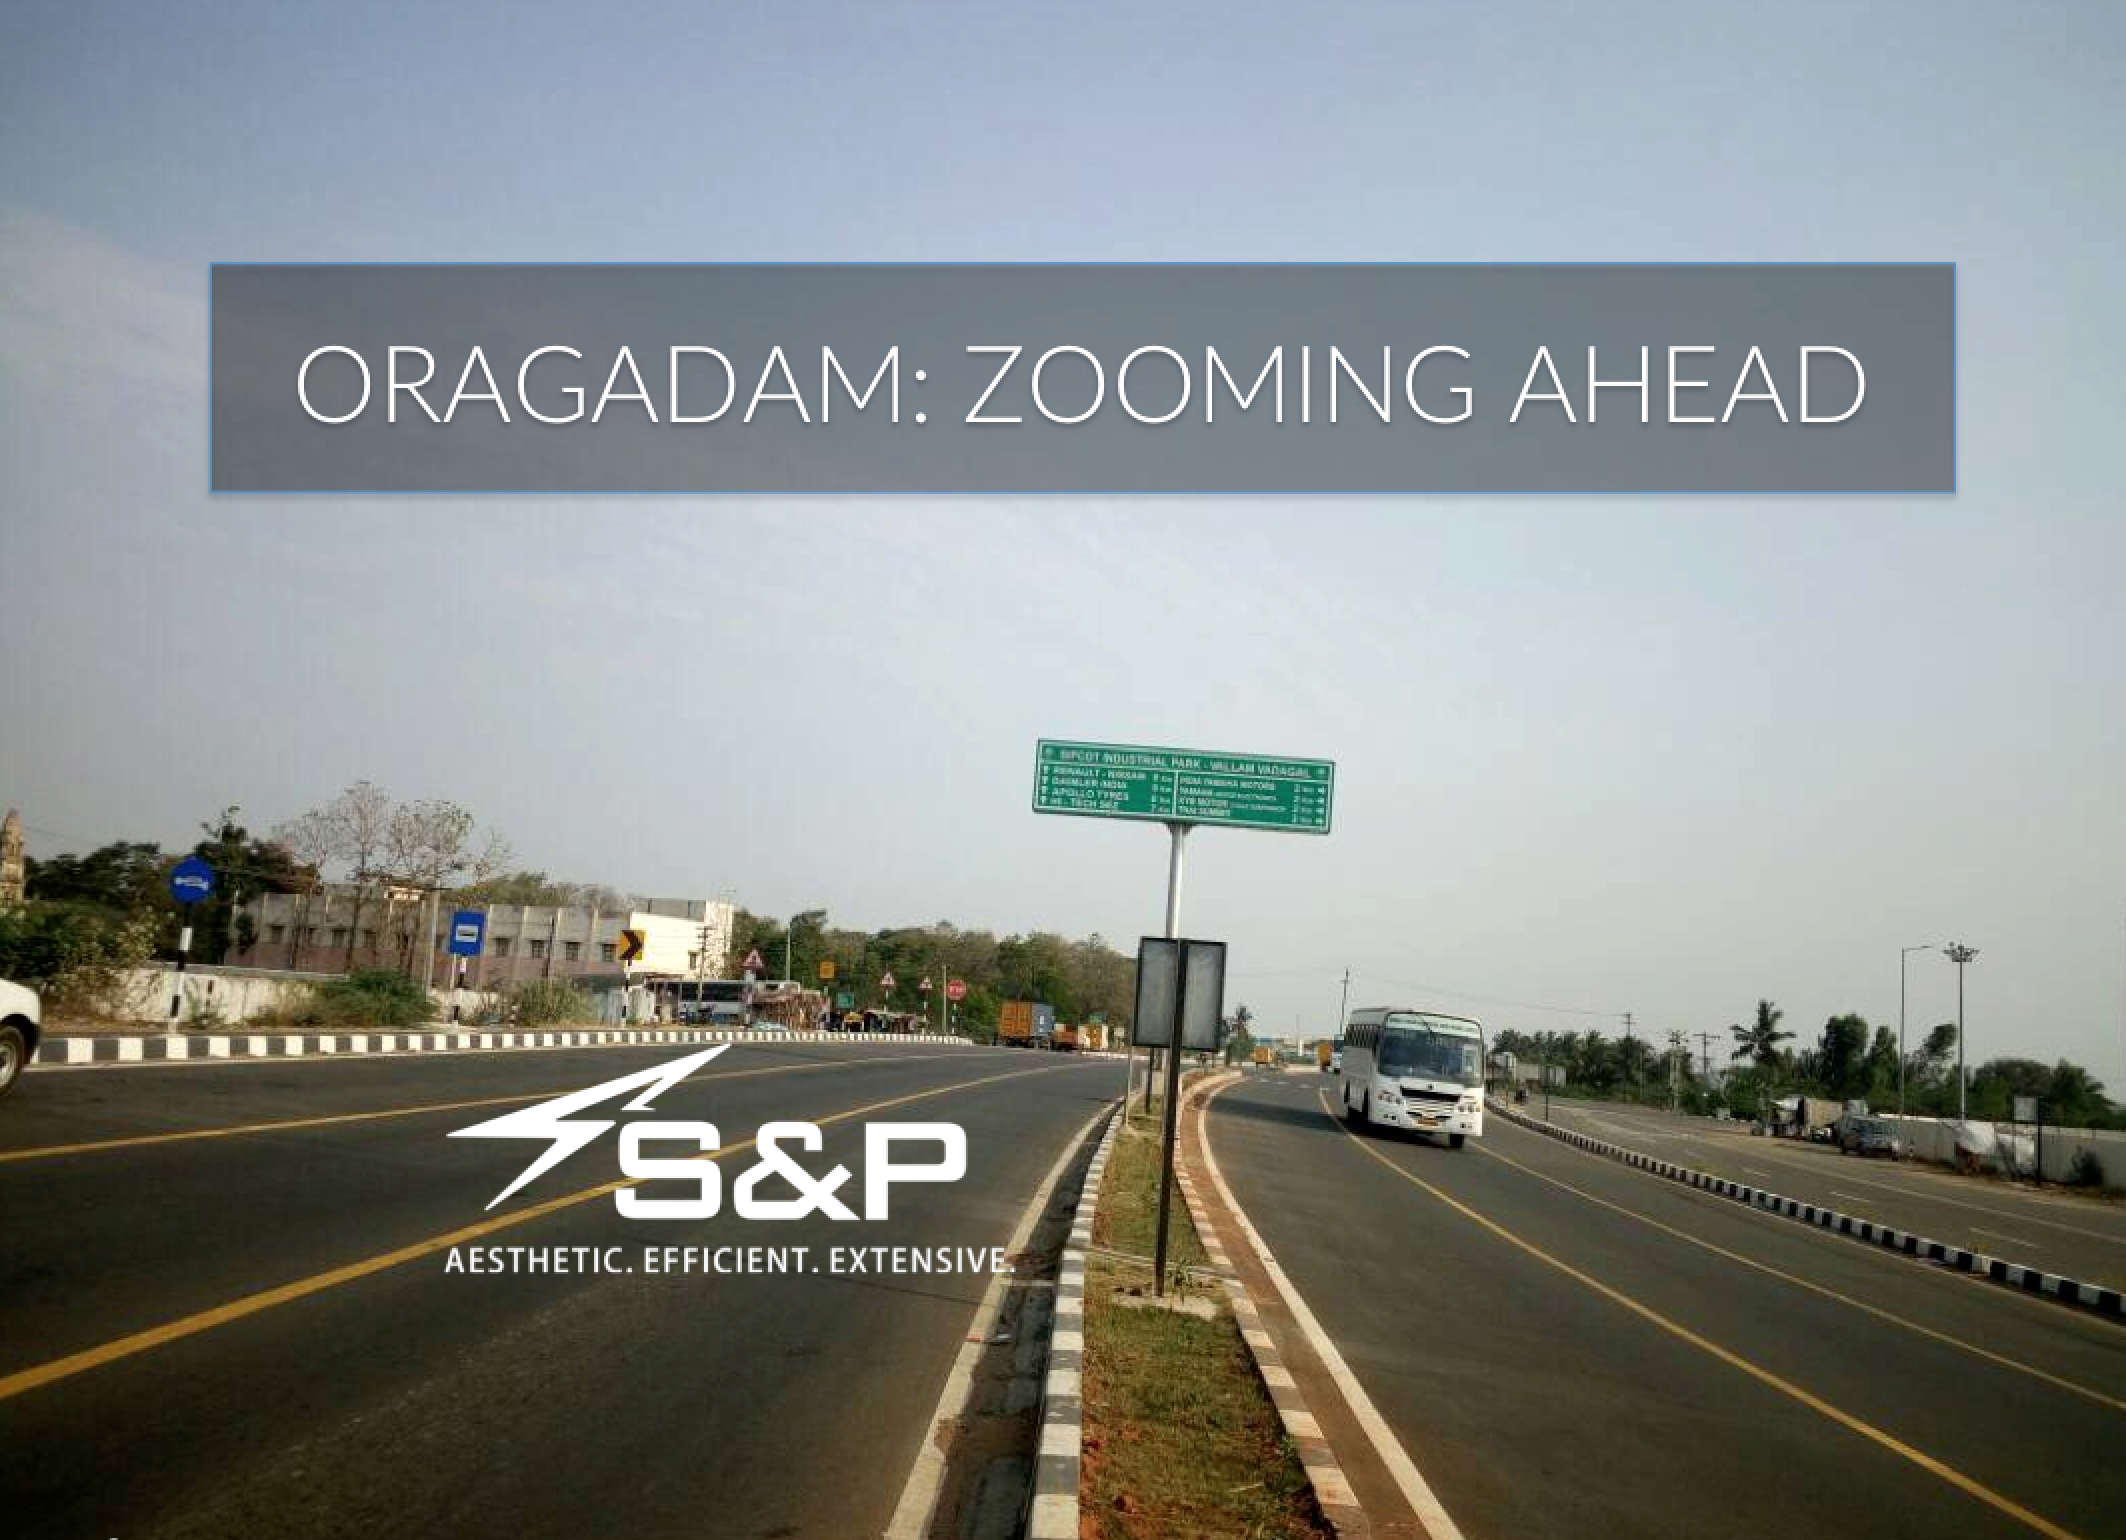 Oragadam: The Future of Chennai